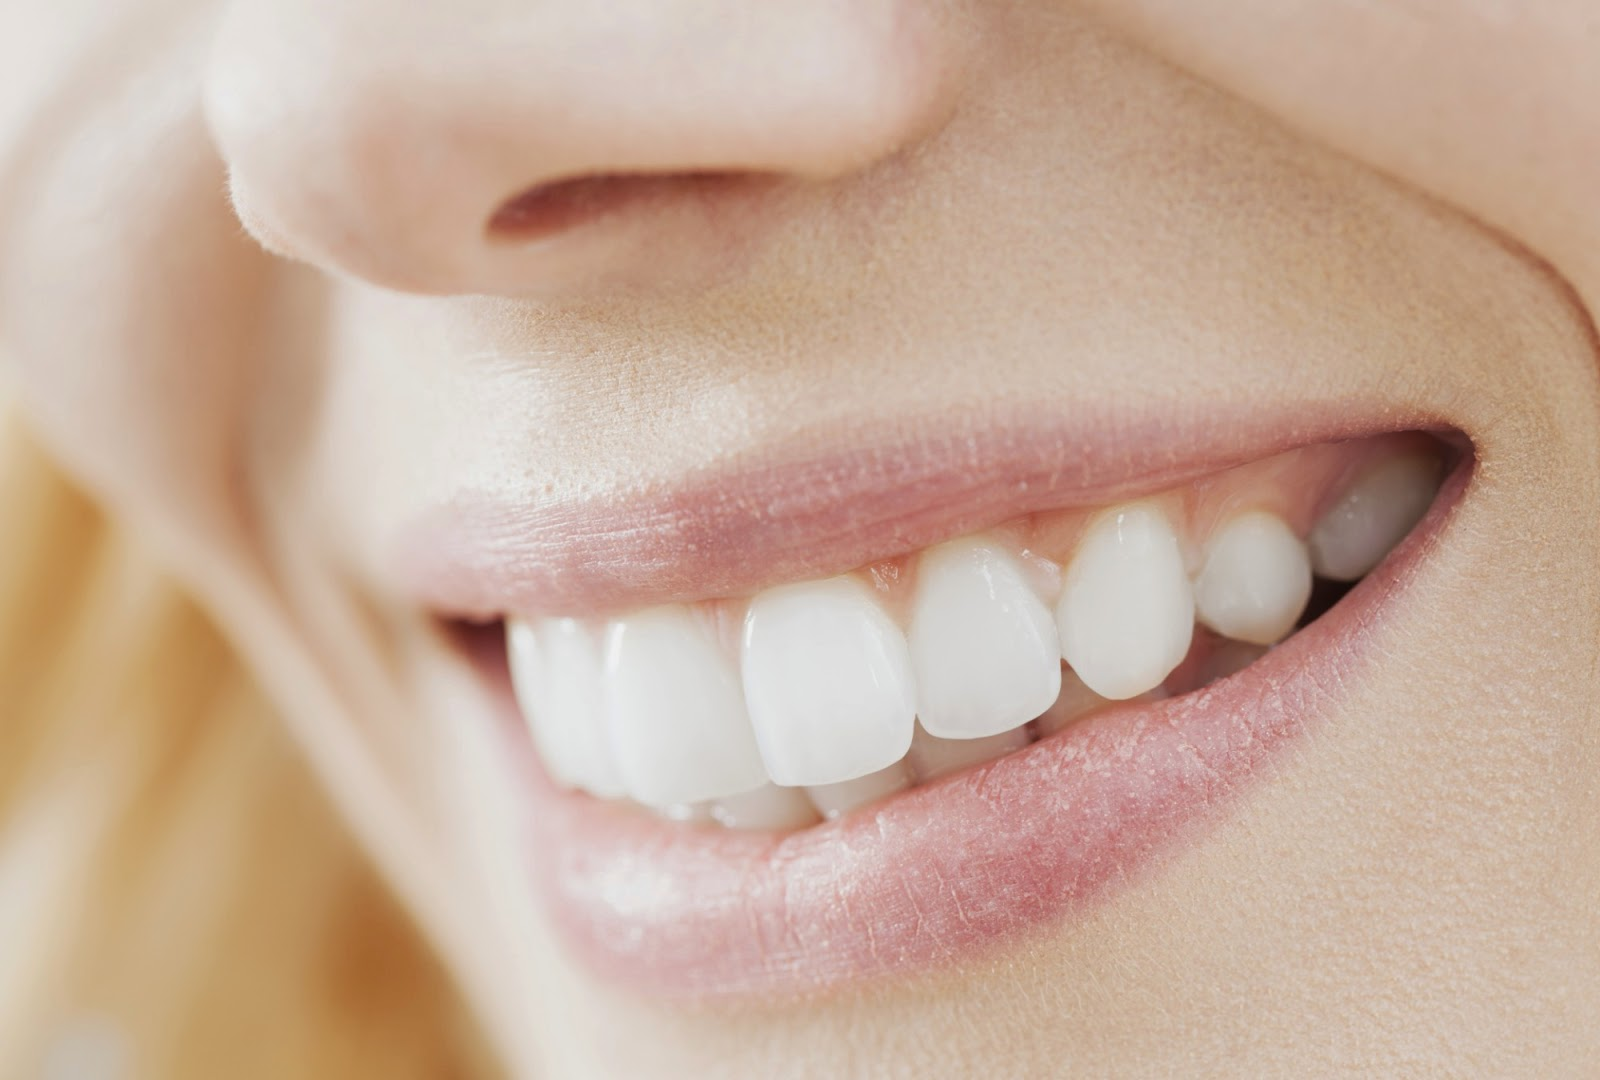 Natural Ways To Whiten Teeth Fast At Home